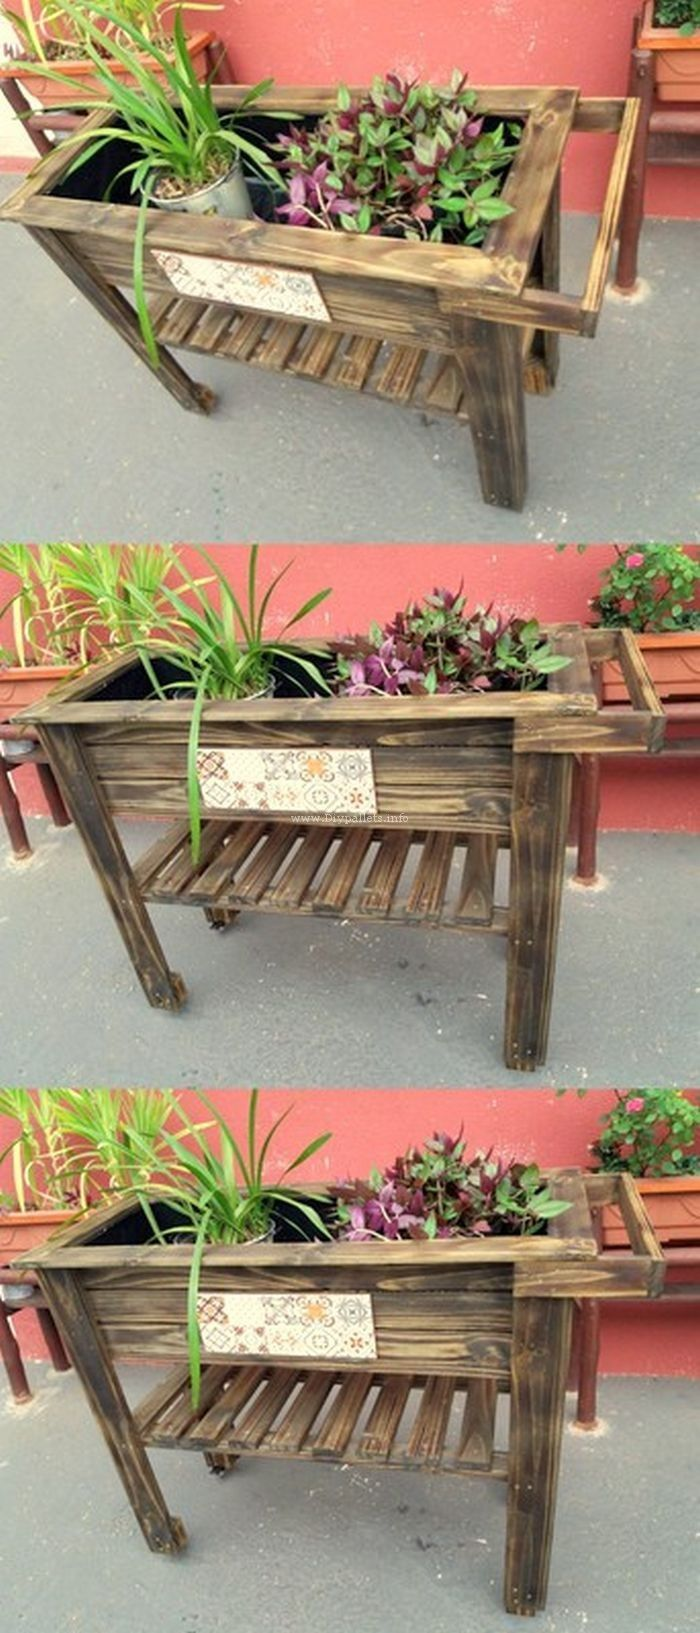 Lovely pallet planter idea projects to try pinterest pallet